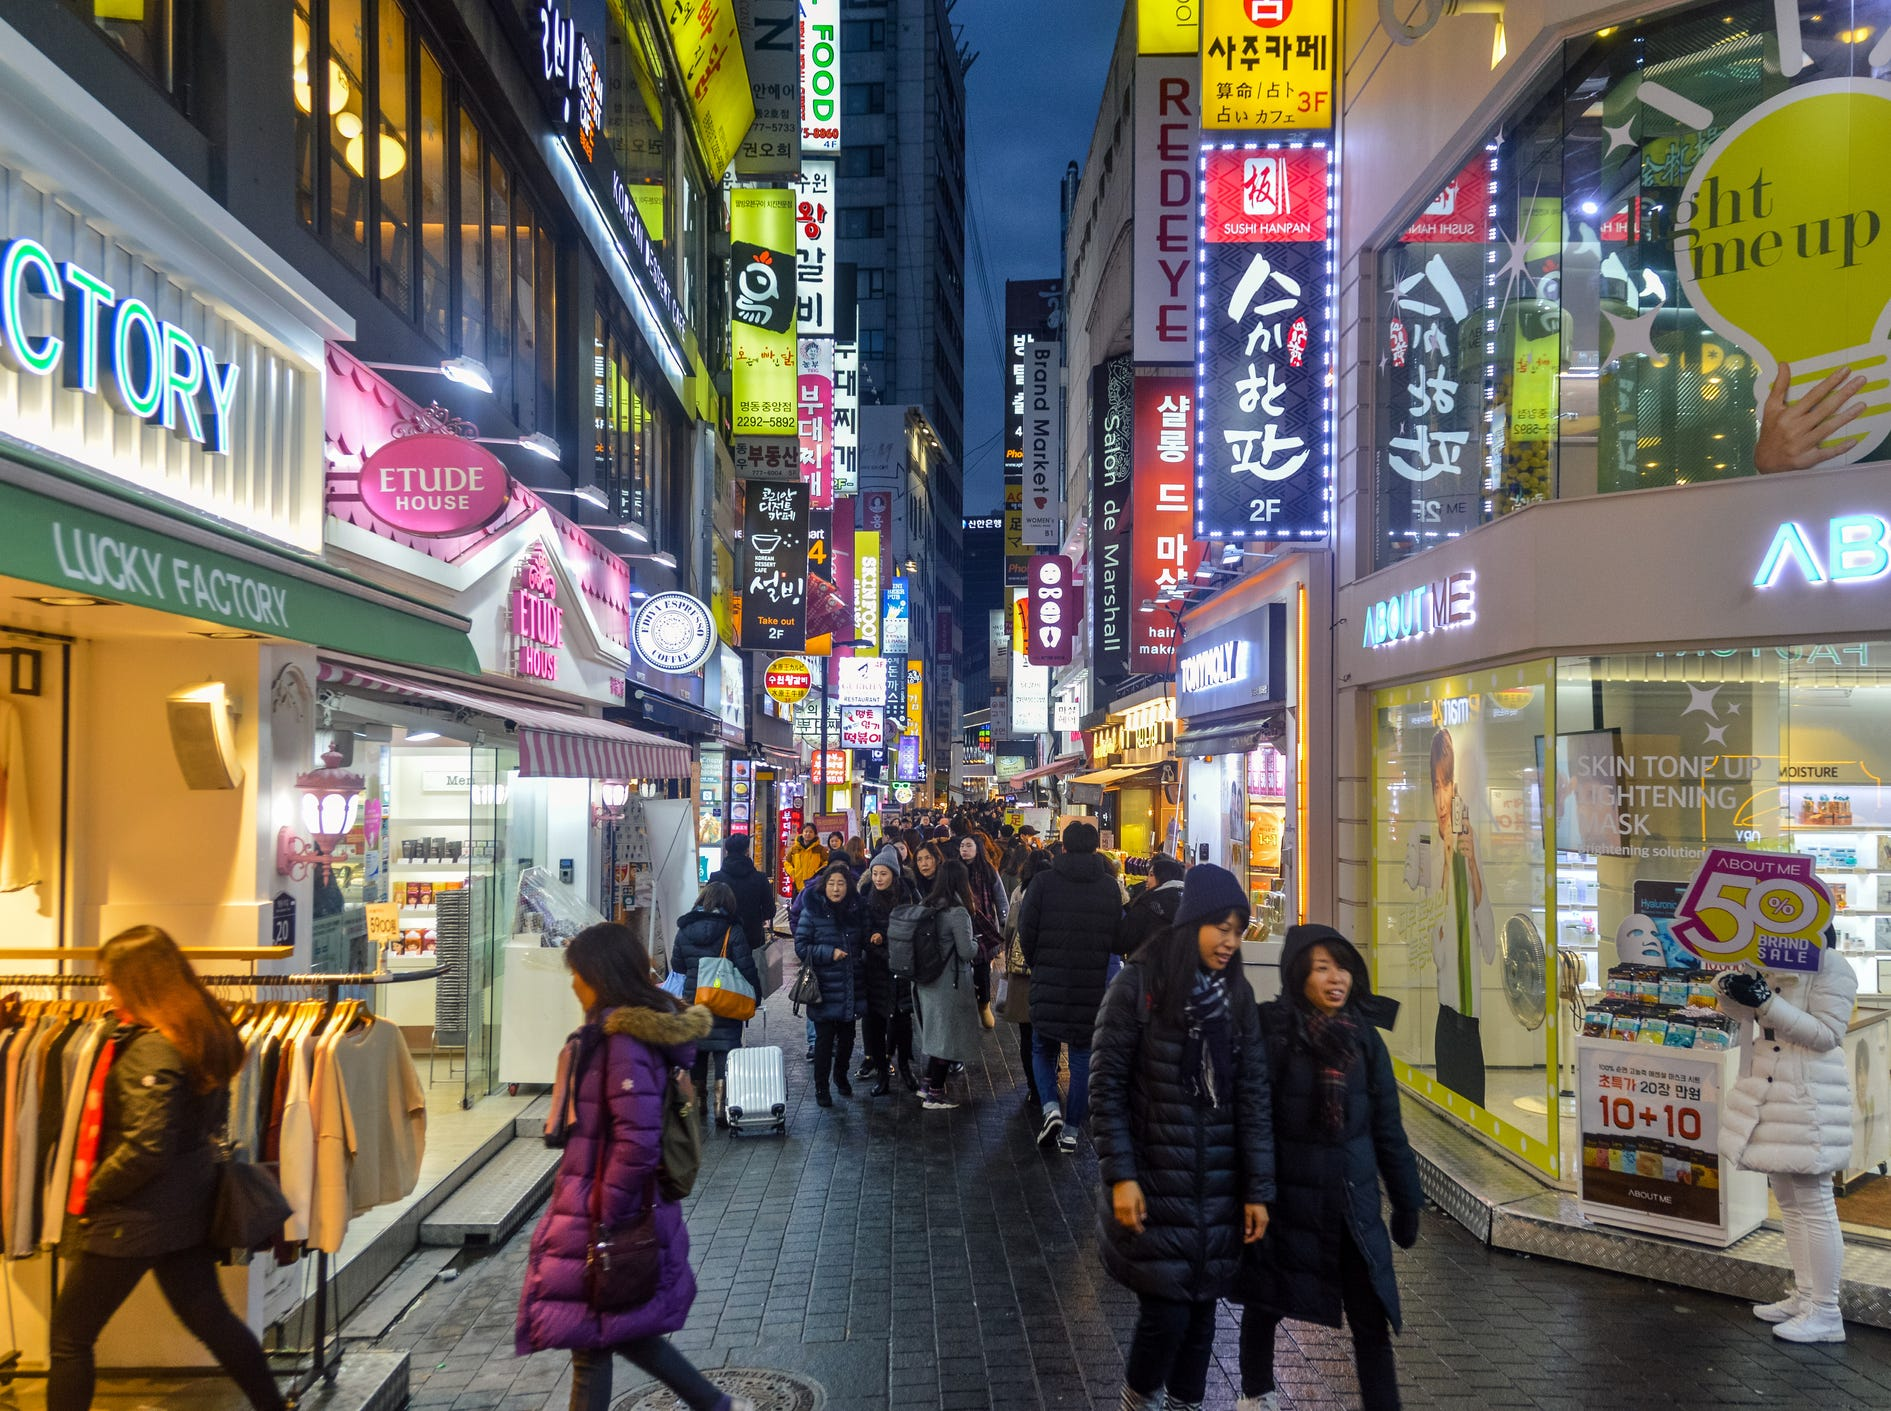 The second most expensive country is South Korea, at $772 a square foot (and a local salary of $21,723 good for an 84 sq. ft. dwelling).